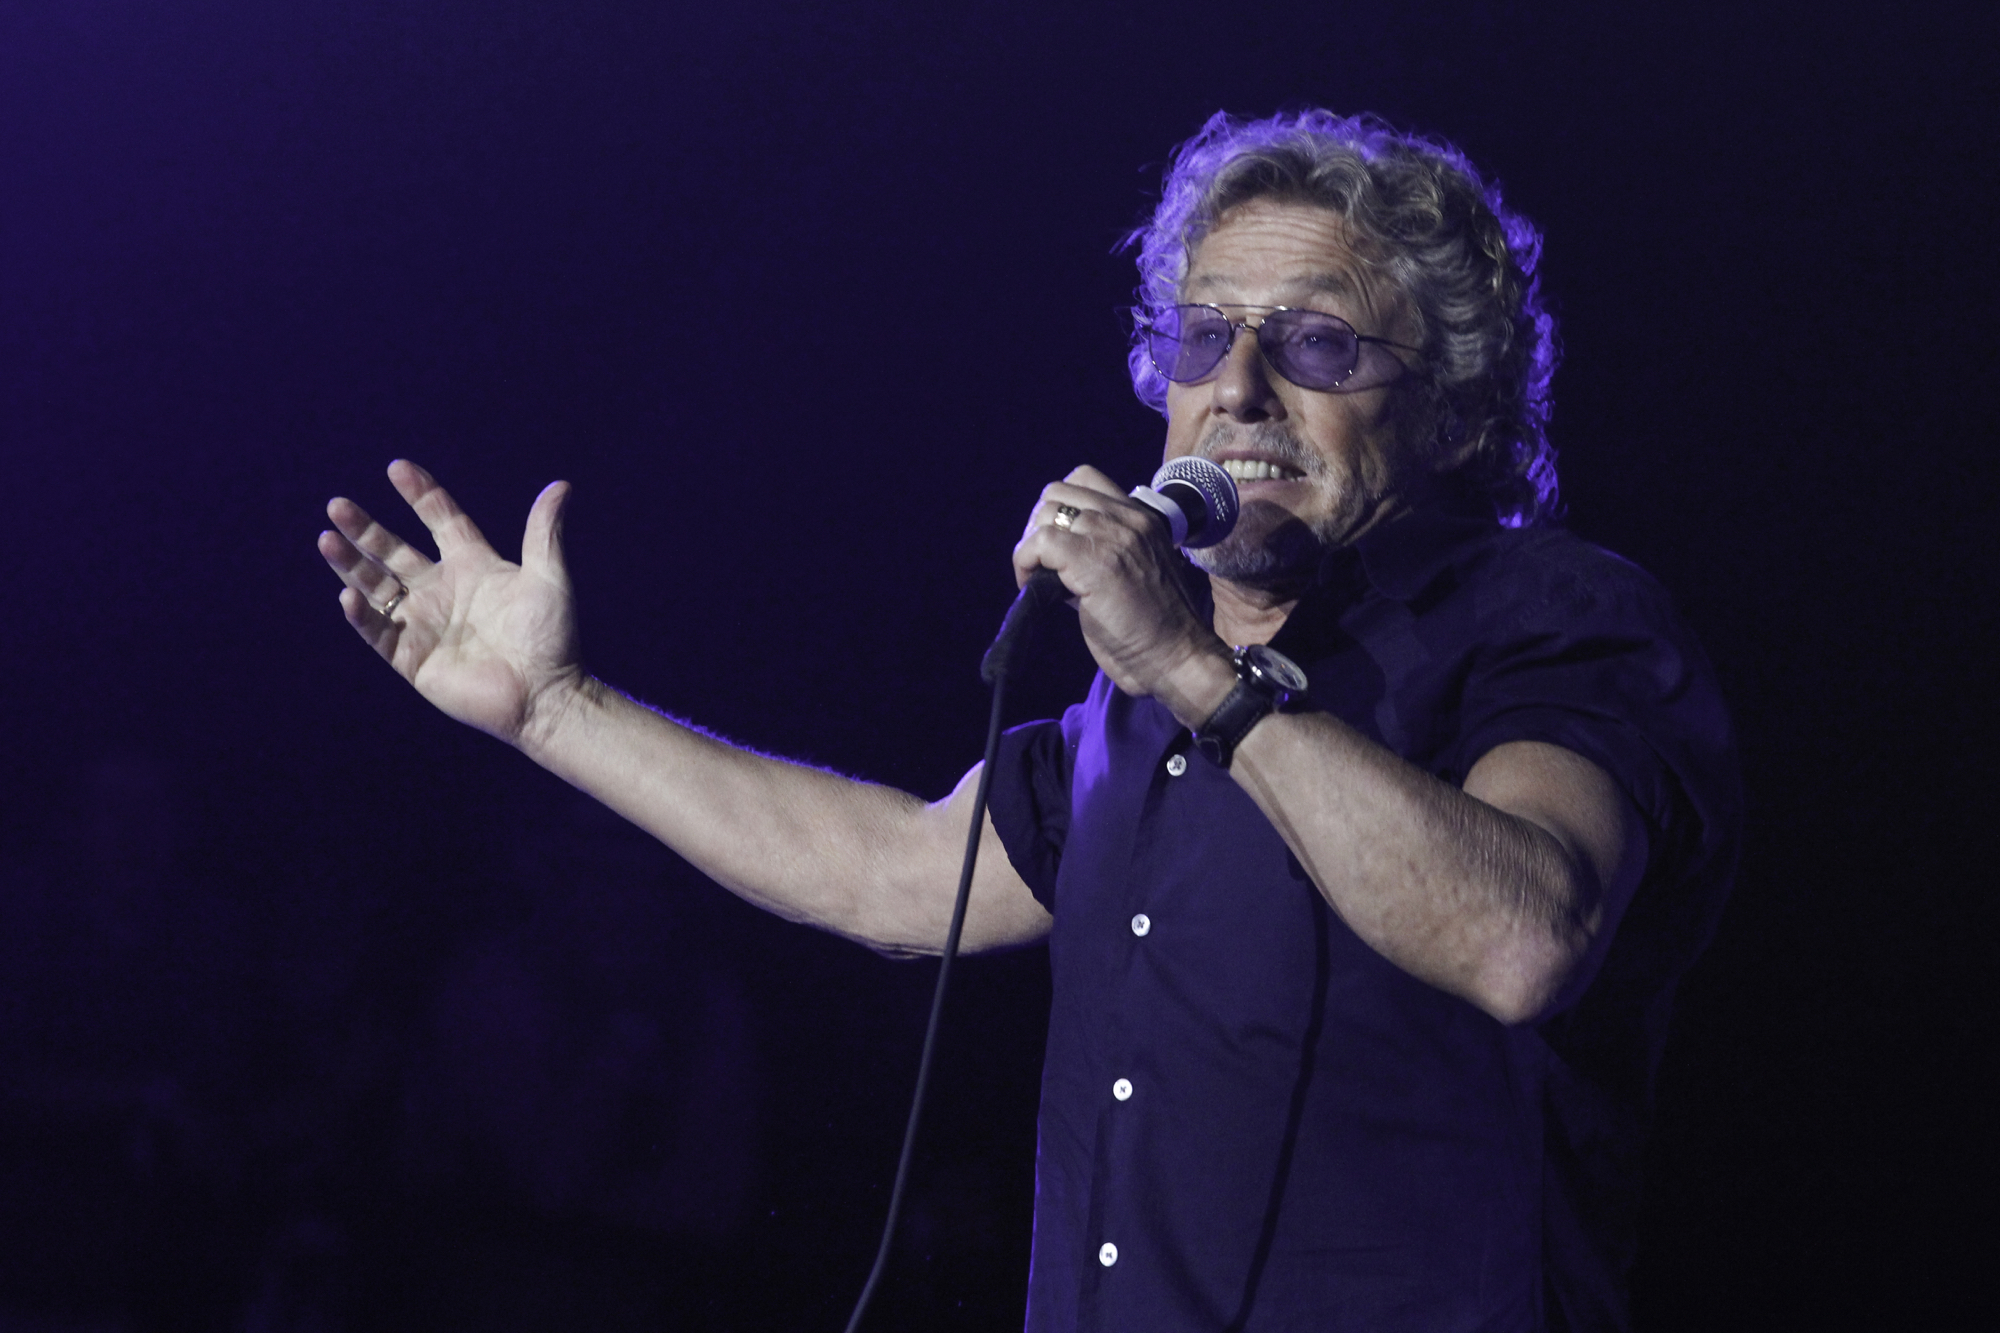 Roger Daltrey would like to remind you to stop smoking pot at The Who's concerts